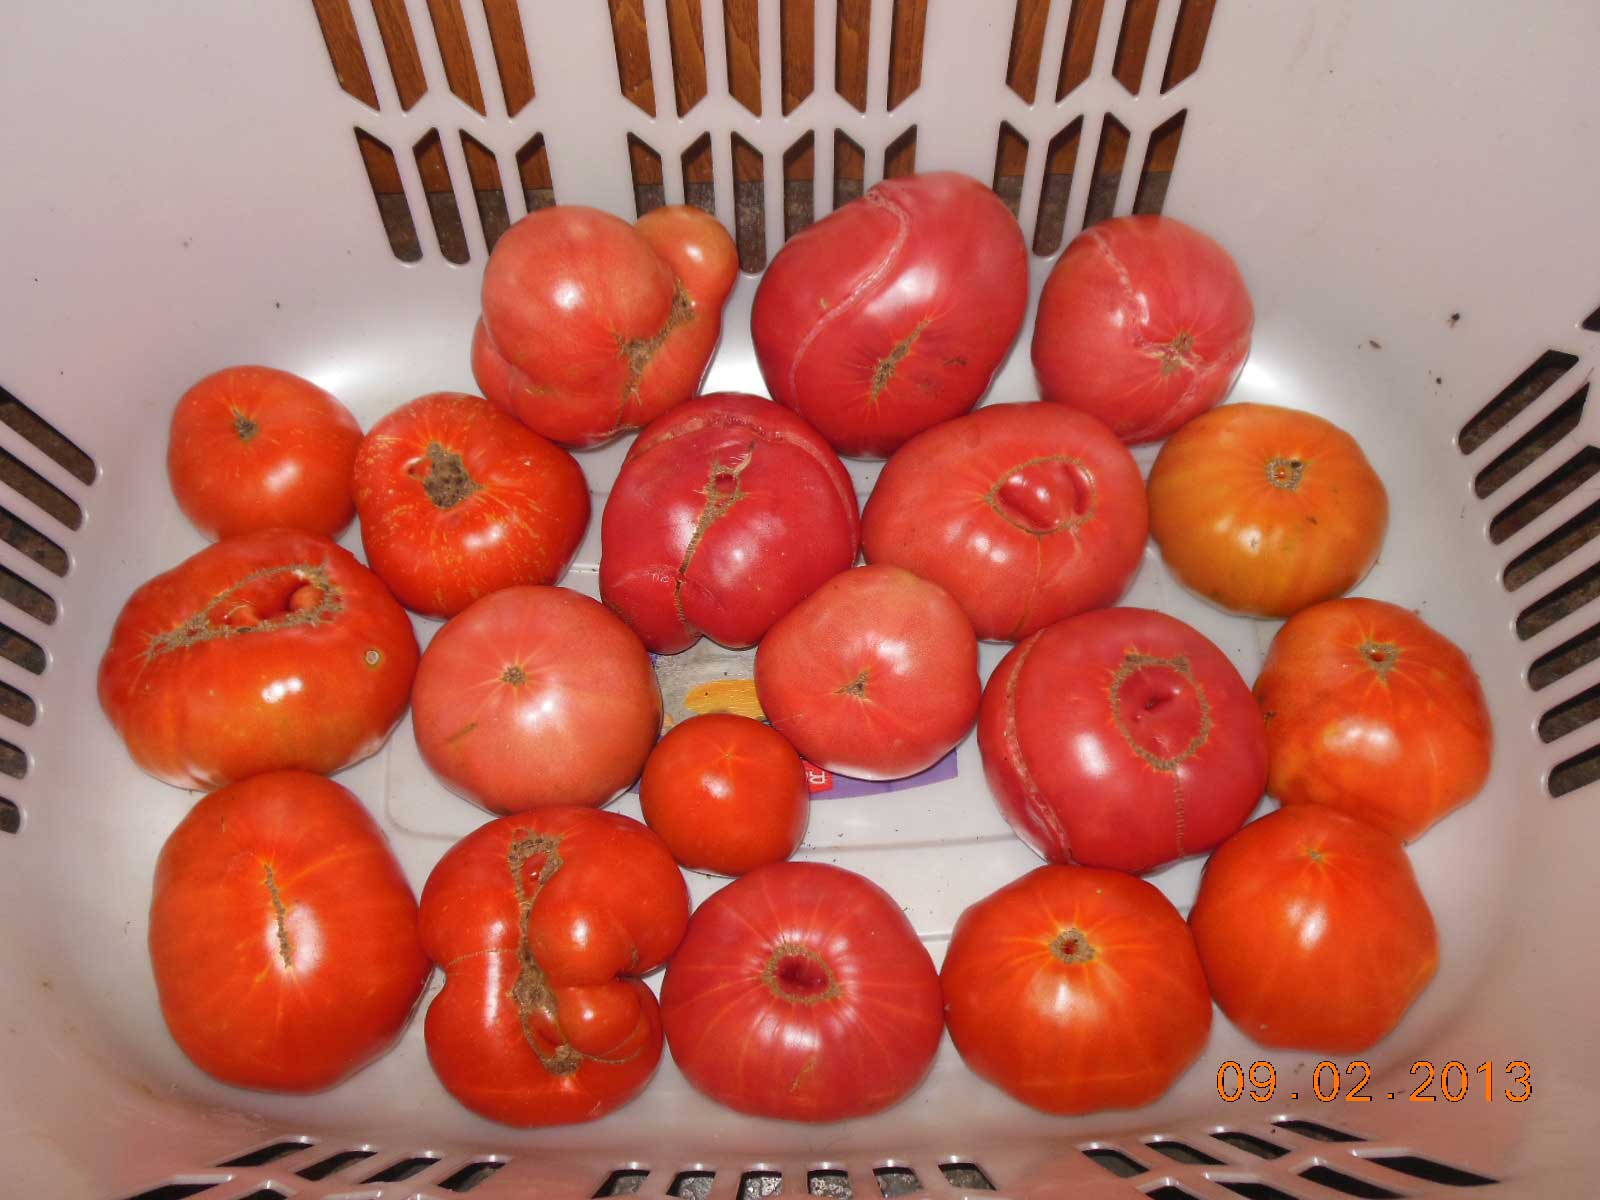 One of many tomato harvests in 2013